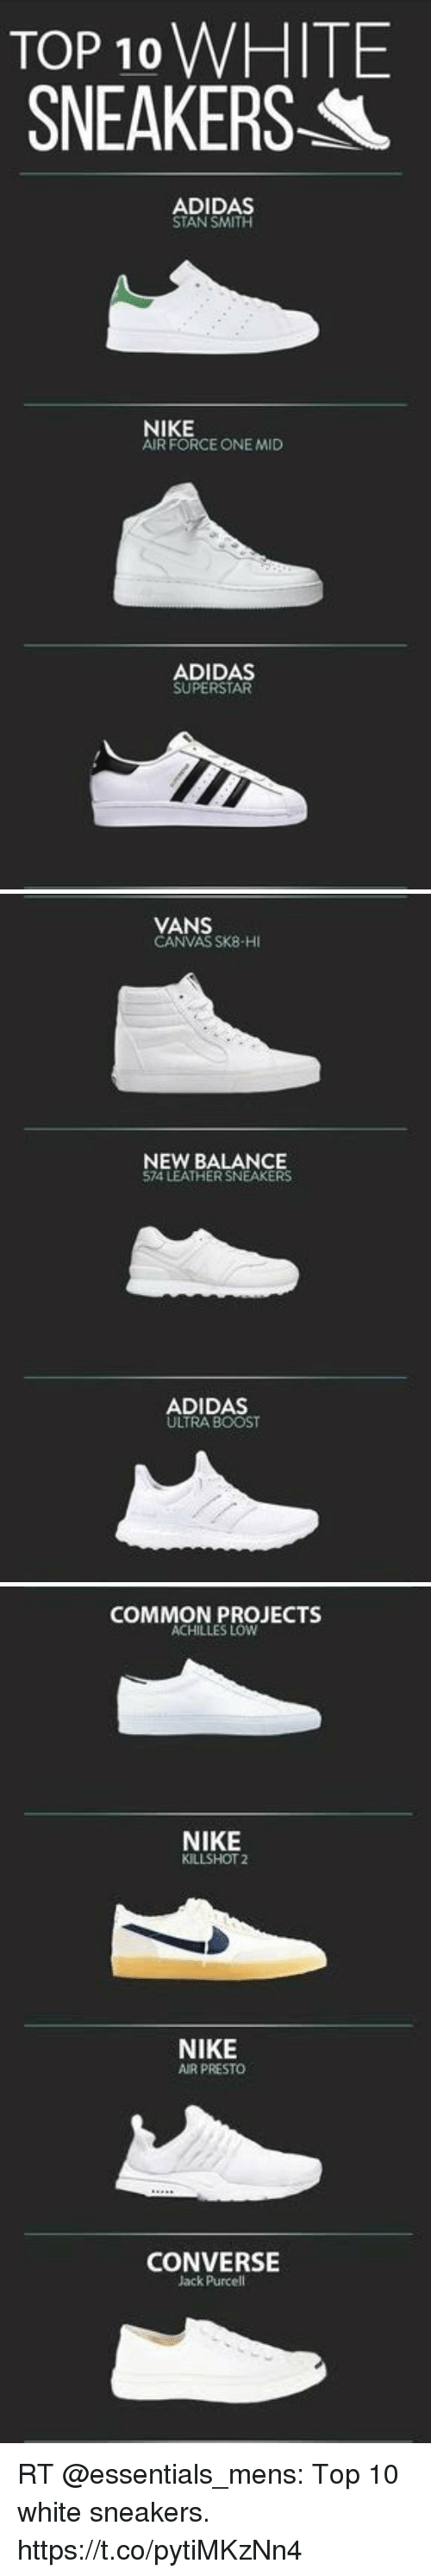 Adidas, Memes, and New Balance: TOP 10 WHITE SNEAKERS ADIDAS STAN SMITH NIKE